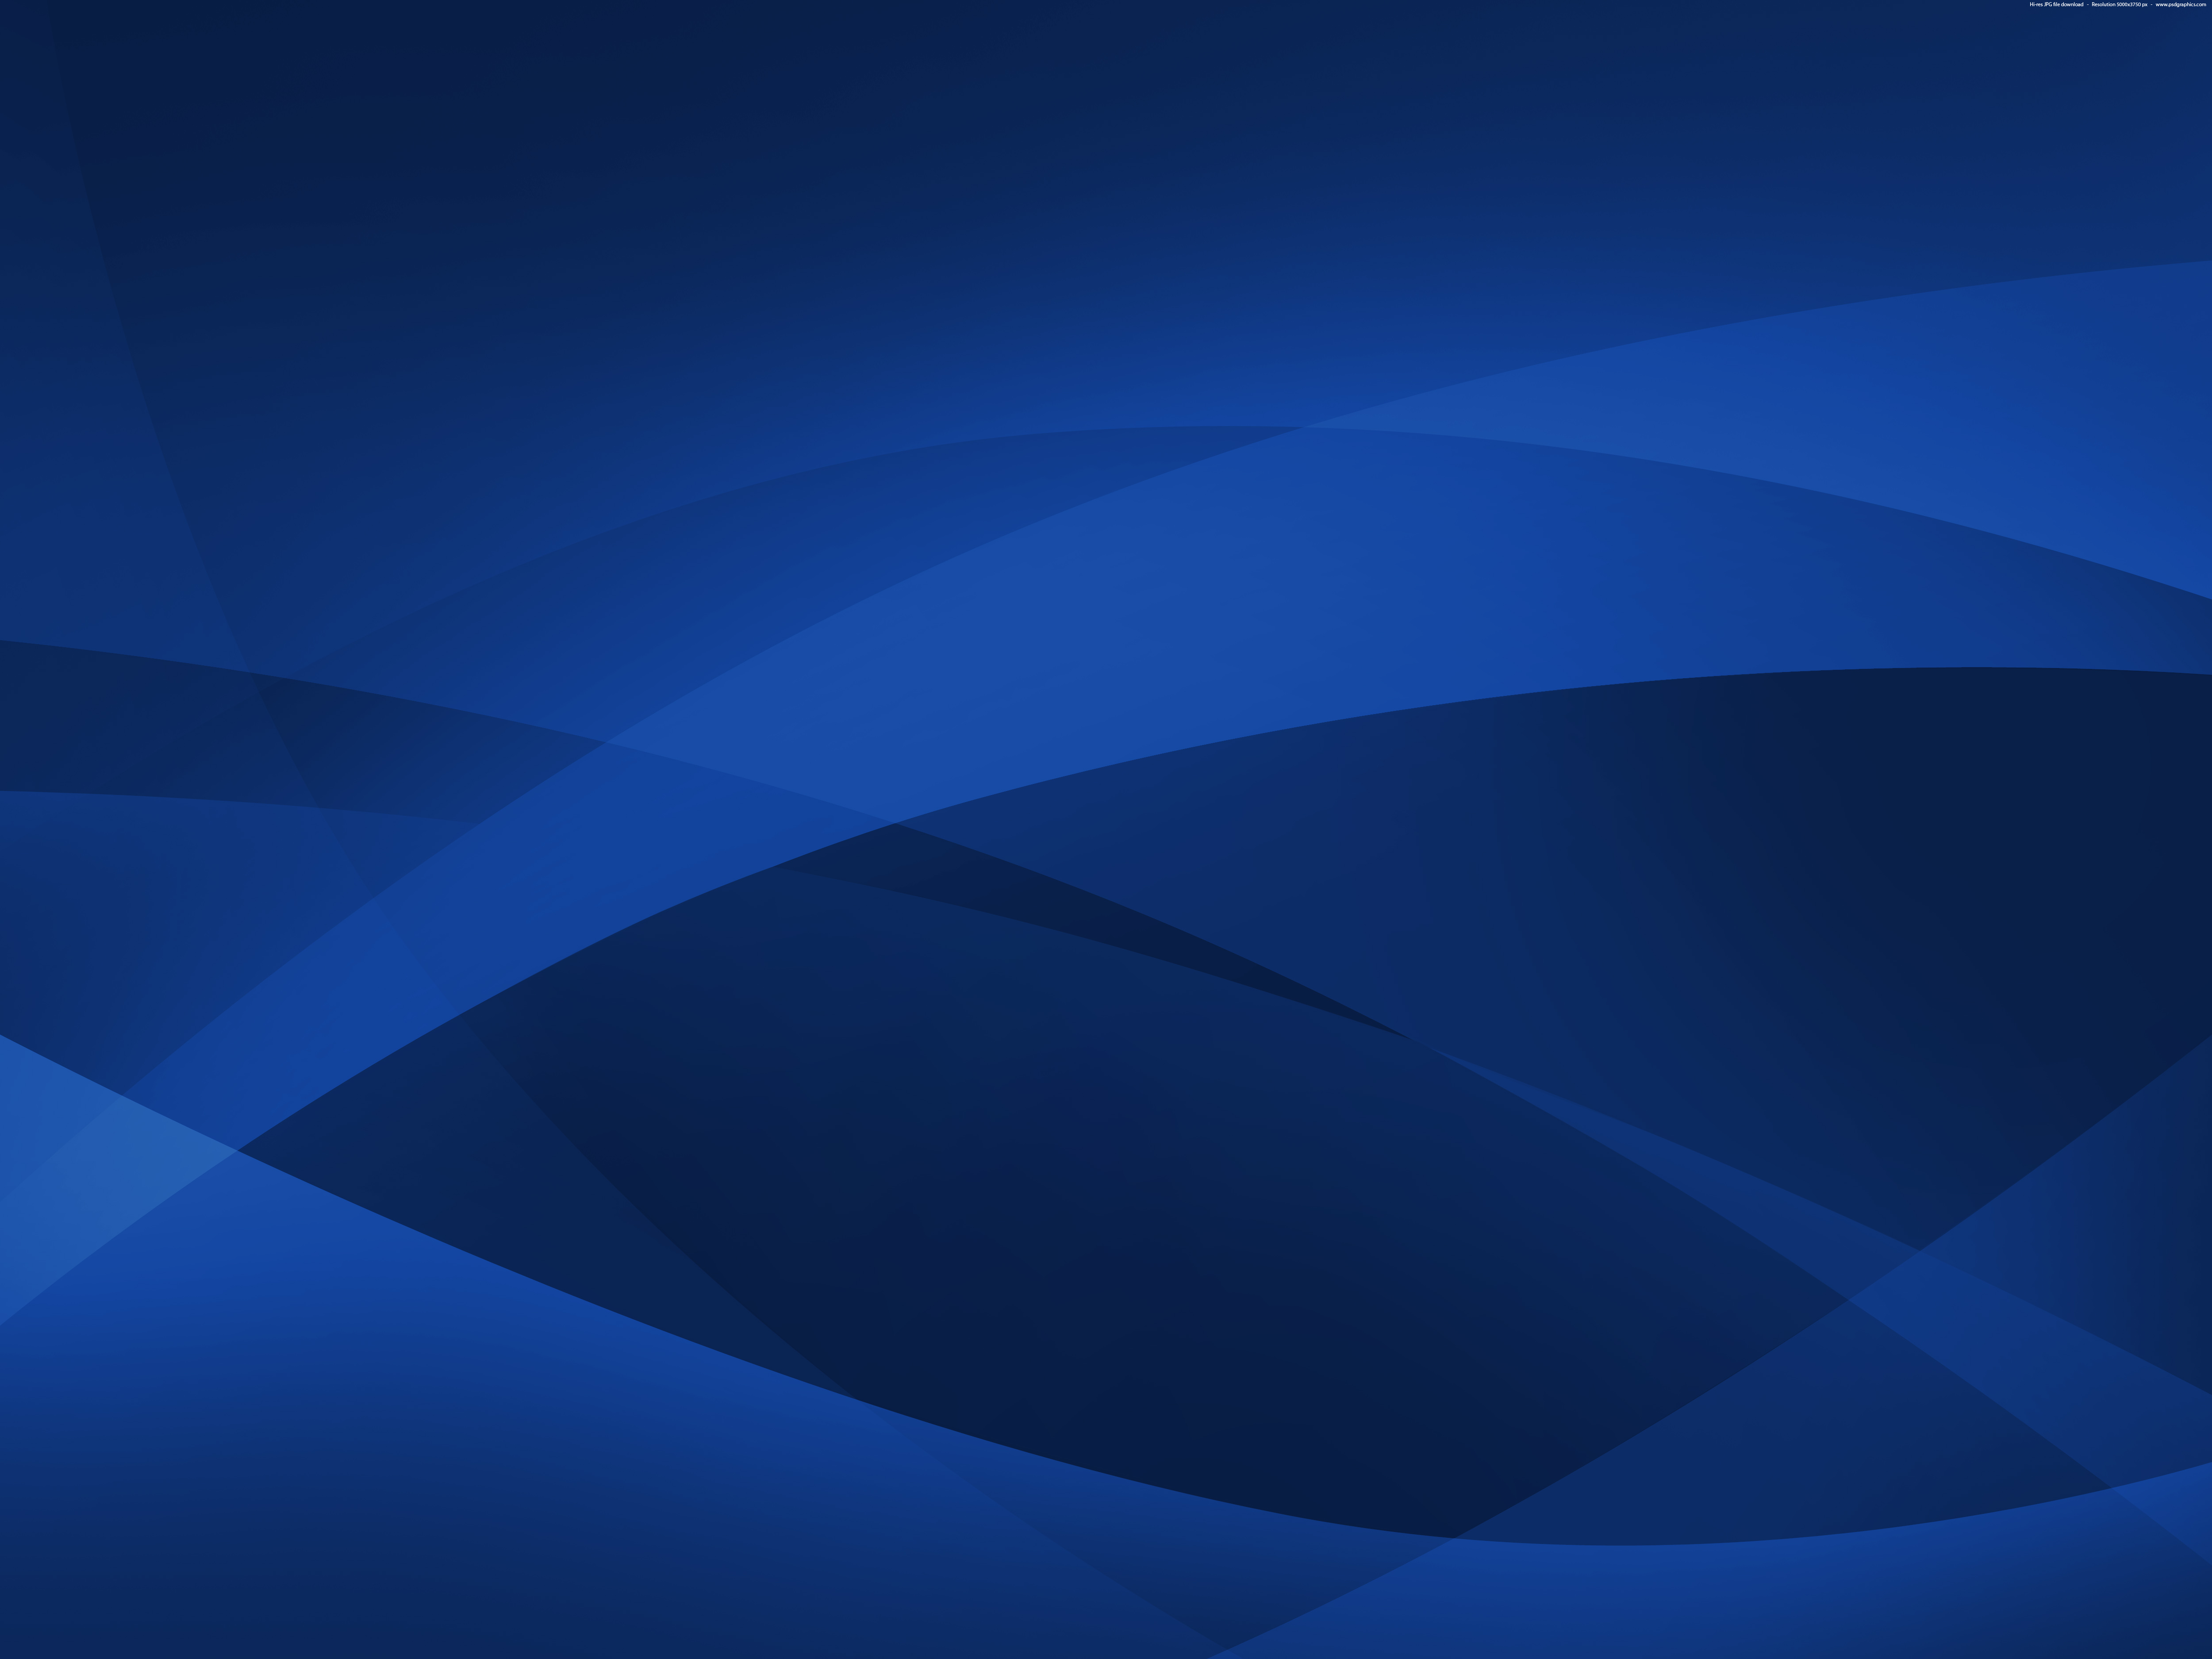 blue-layout-background | Boyns Information Systems Limited